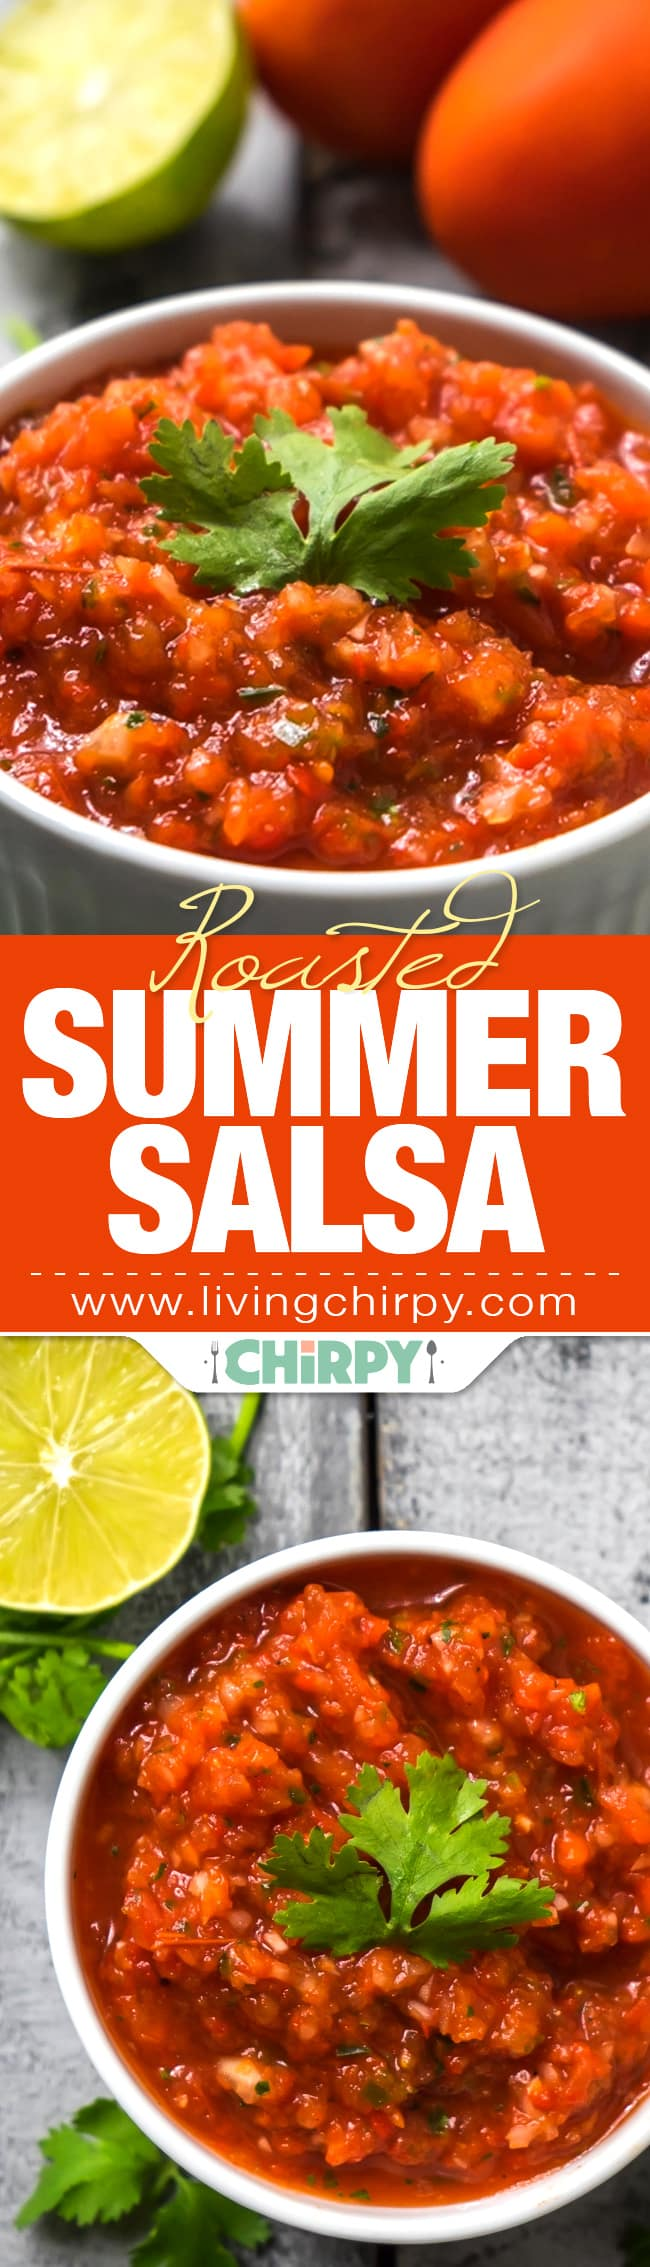 Roasted Summer Salsa Pin